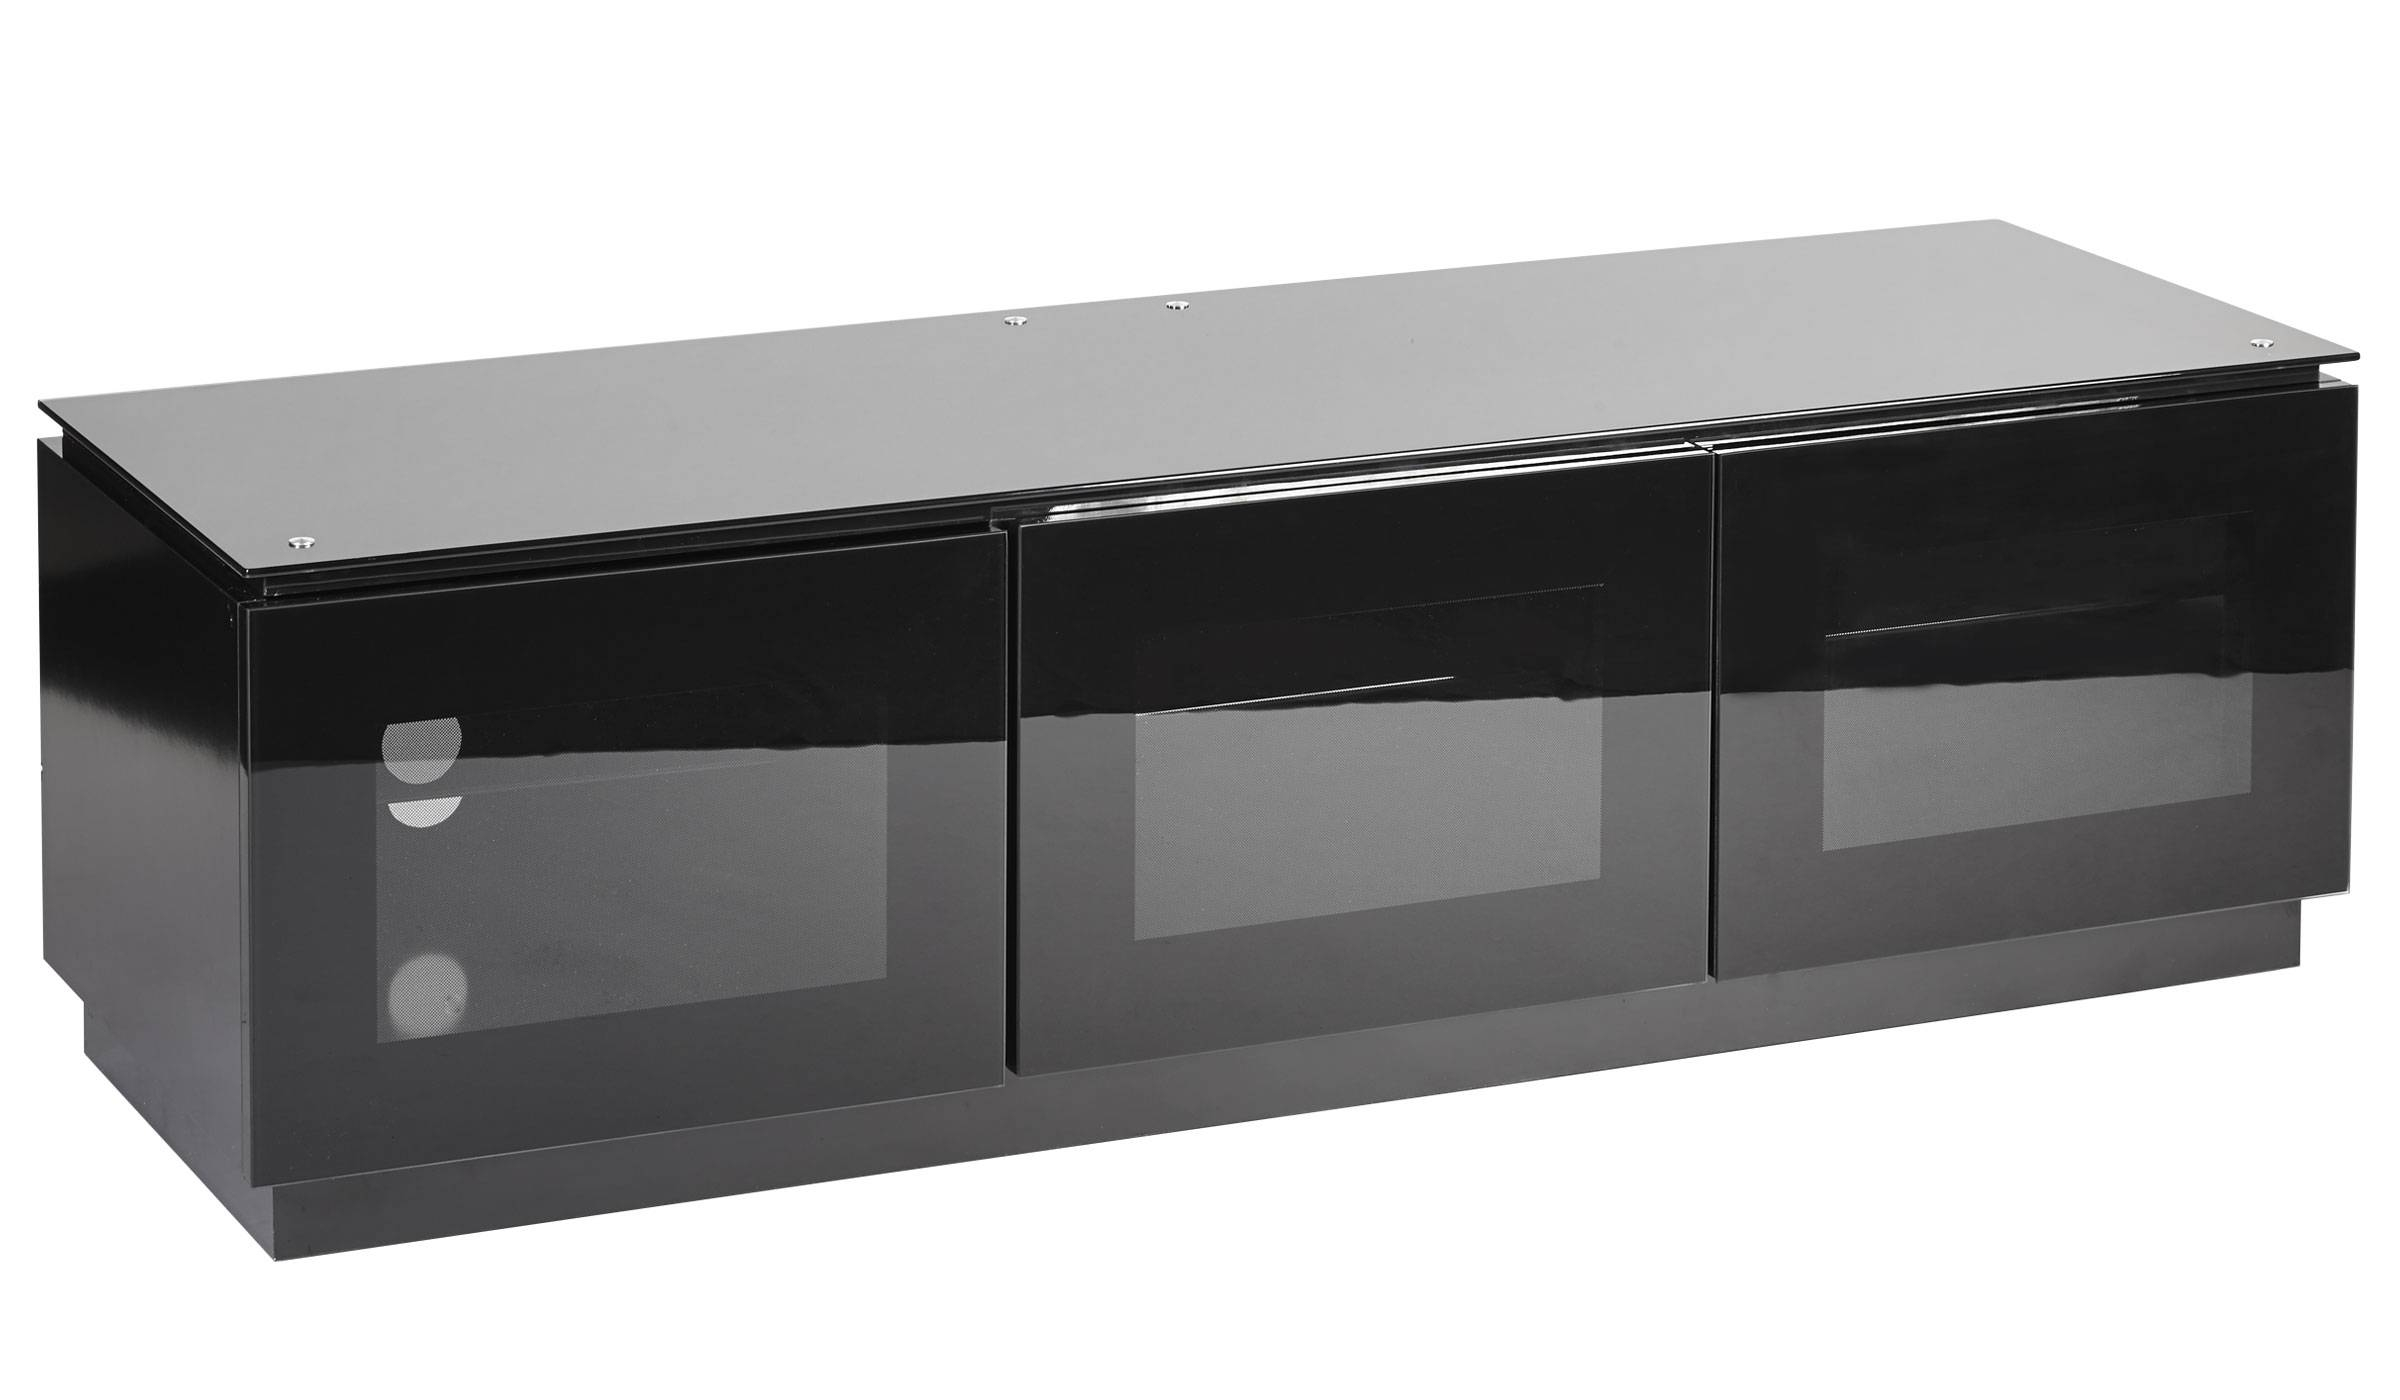 Black Gloss Tv Unit Up To 65 Inch Flat Tv | Mmt-D1500 pertaining to Black Tv Cabinets With Doors (Image 5 of 15)